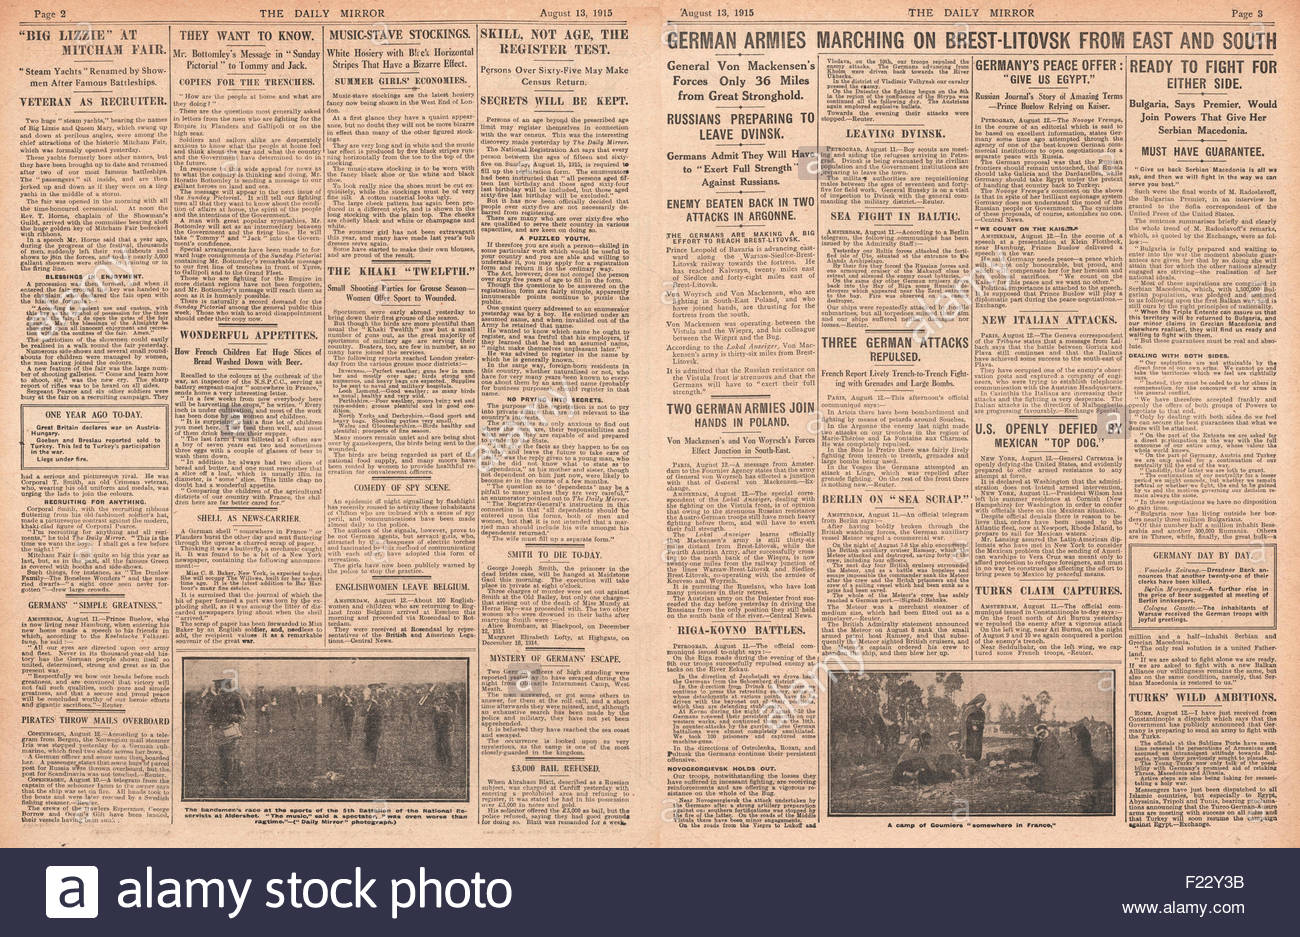 1915 page 2 & 3 Daily Mirror German Army advance on Brest-Litovsk - Stock Image